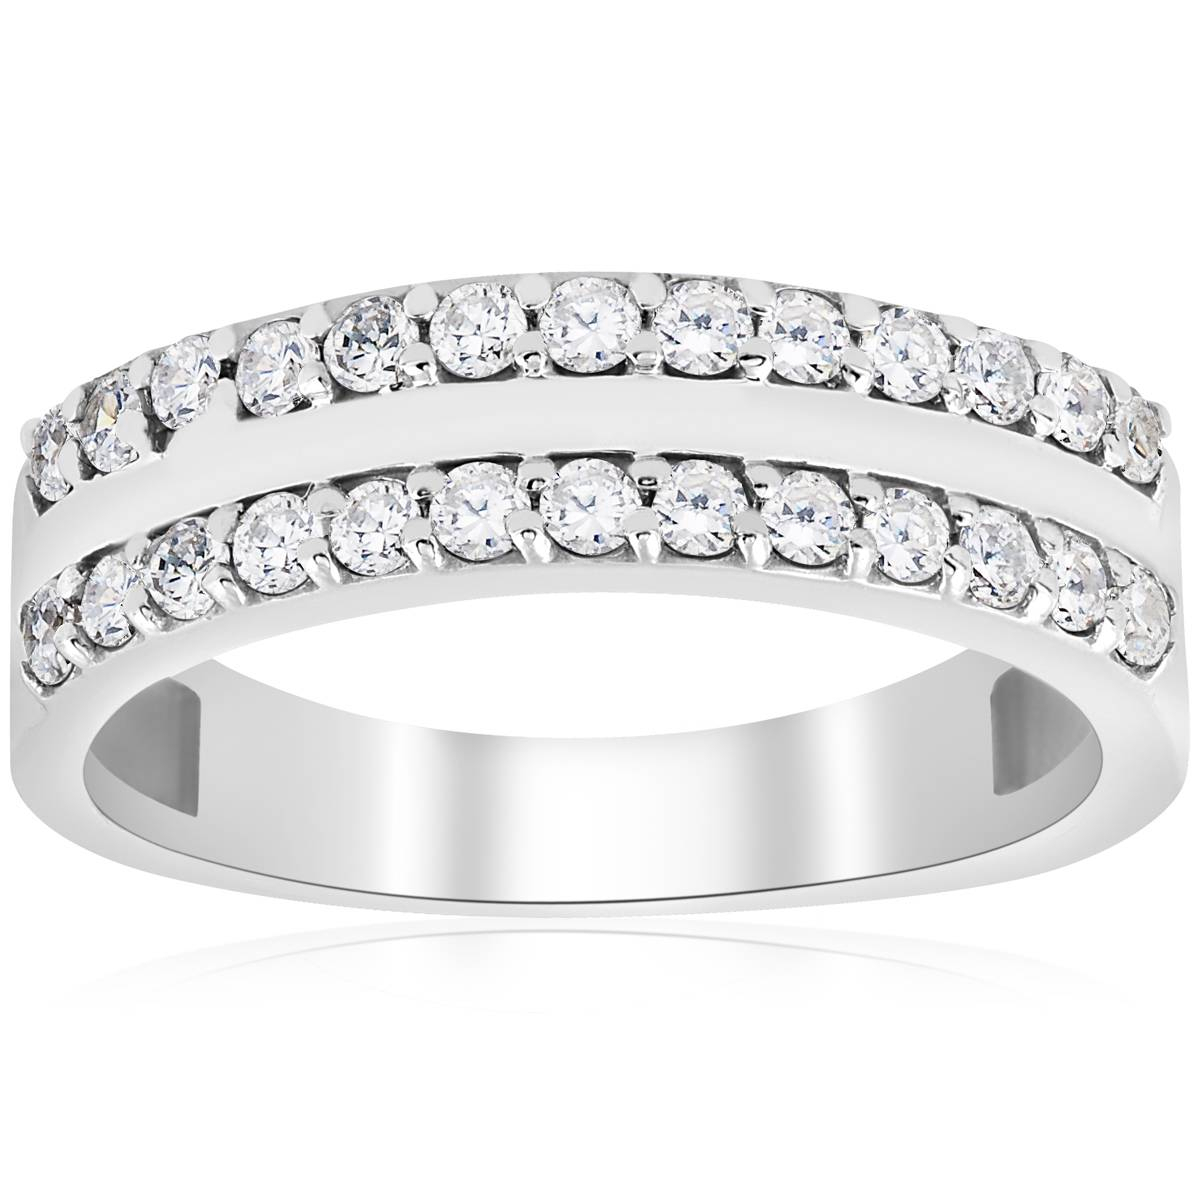 Details About Diamond Wedding Ring 3/4 Ct Double Row Half Eternity Womens  14K White Gold Band Intended For Best And Newest Diamond Five Stone Triple Row Anniversary Bands In White Gold (View 12 of 25)